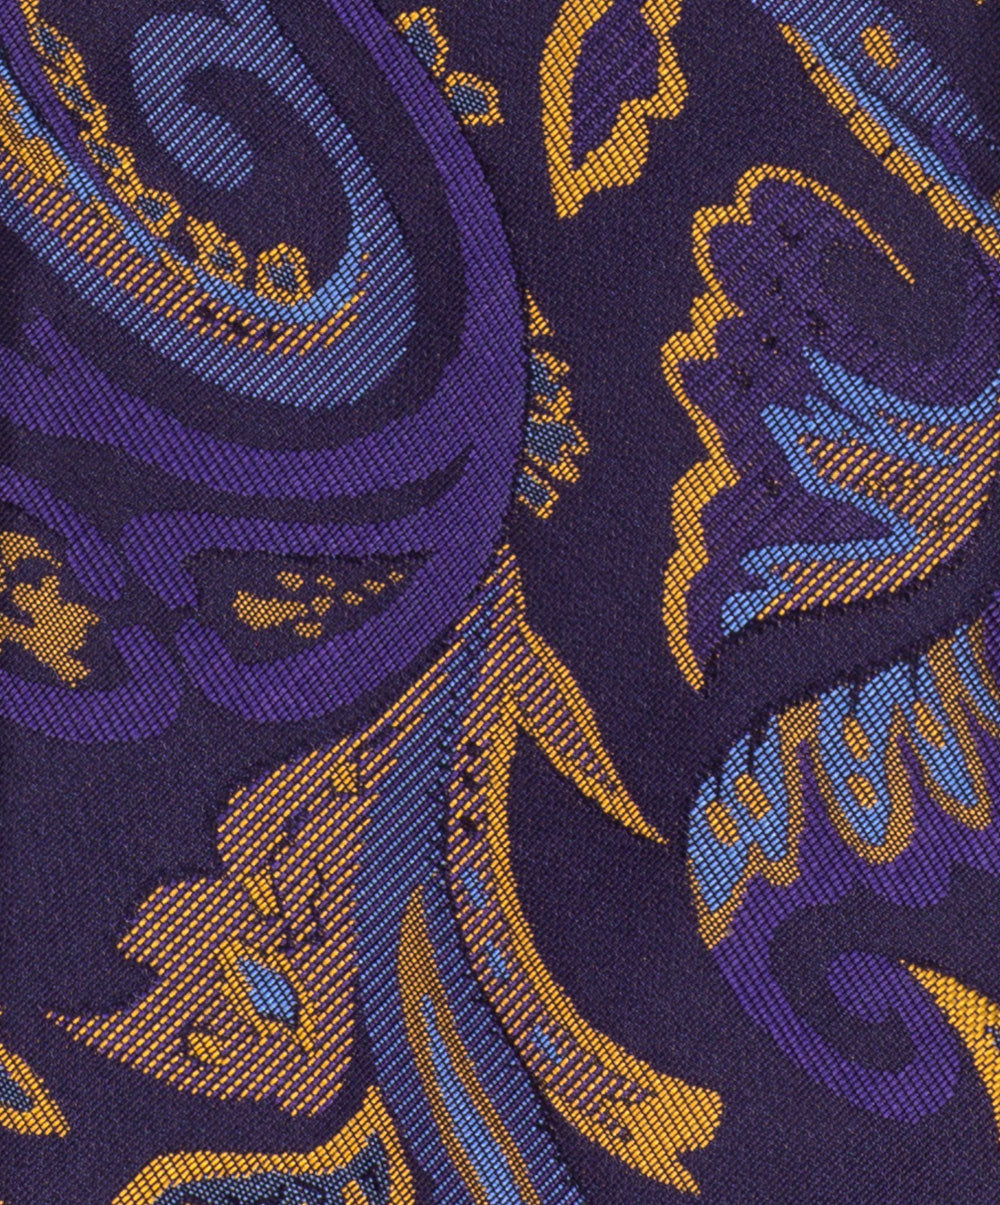 8.0cm Violet/Camel/Sky/Navy Bold Woven Paisely Abstract Tie